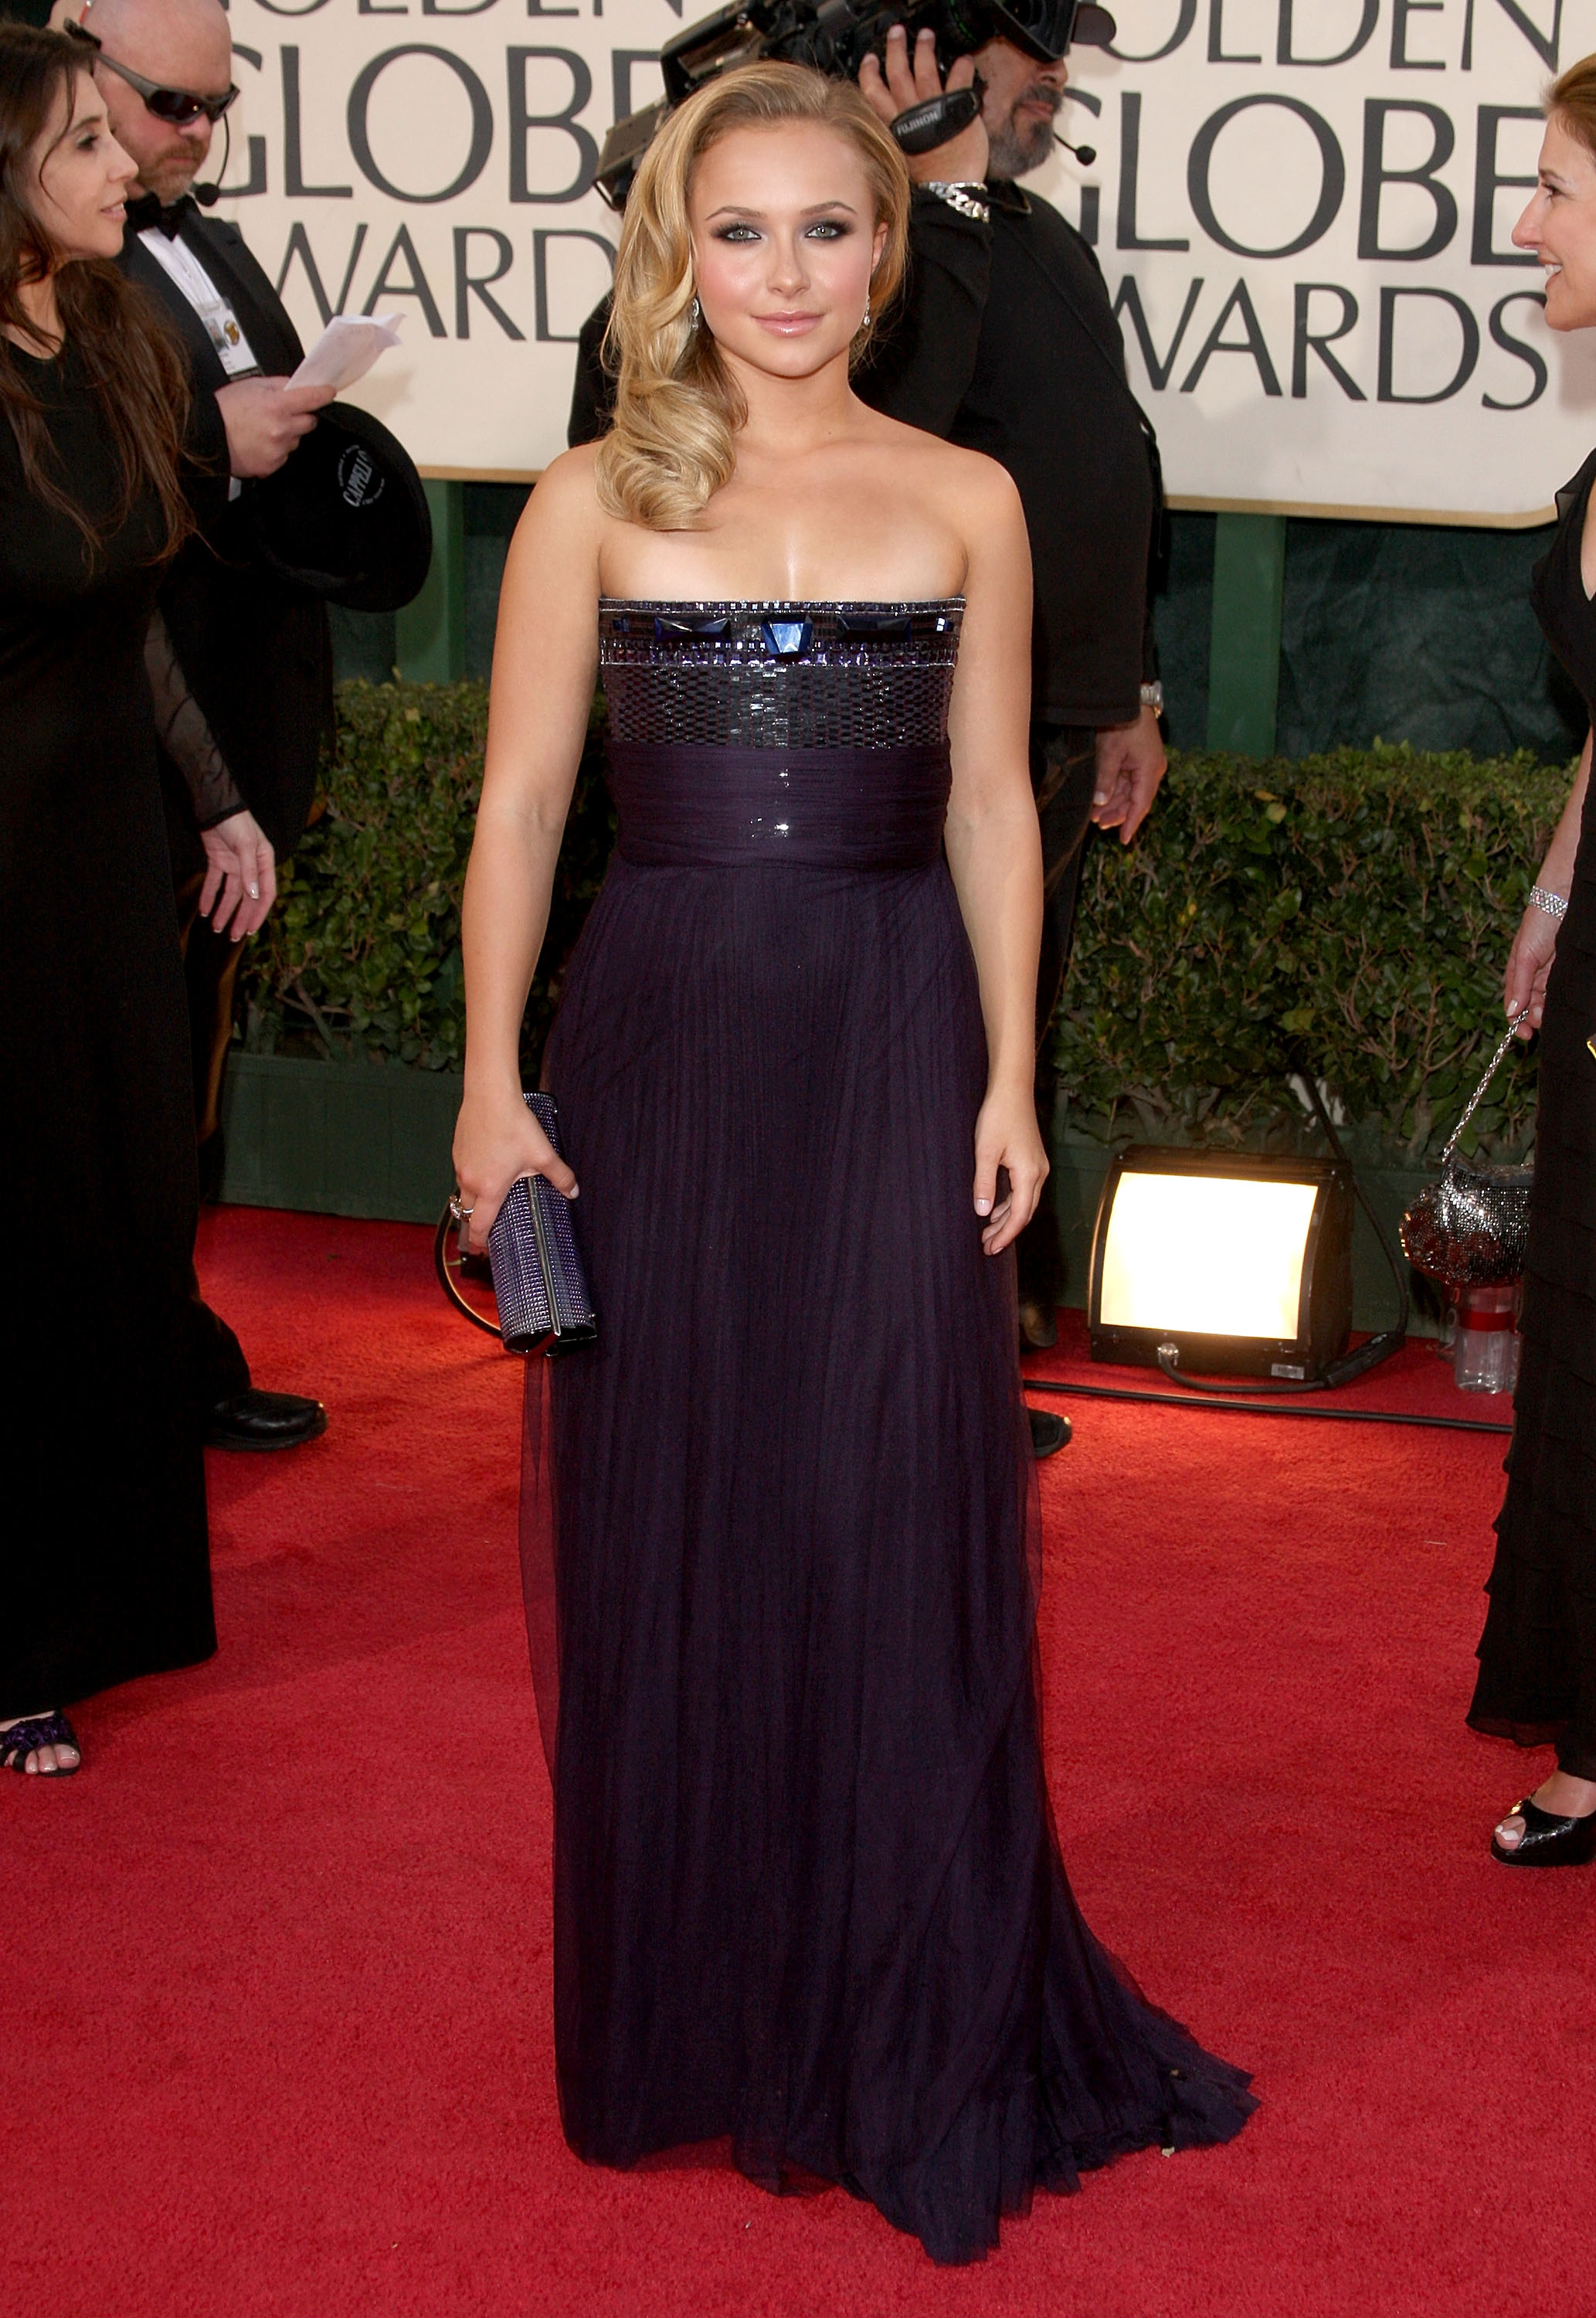 26109_Celebutopia-Hayden_Panettiere_arrives_at_the_66th_Annual_Golden_Globe_Awards-06_122_14lo.jpg